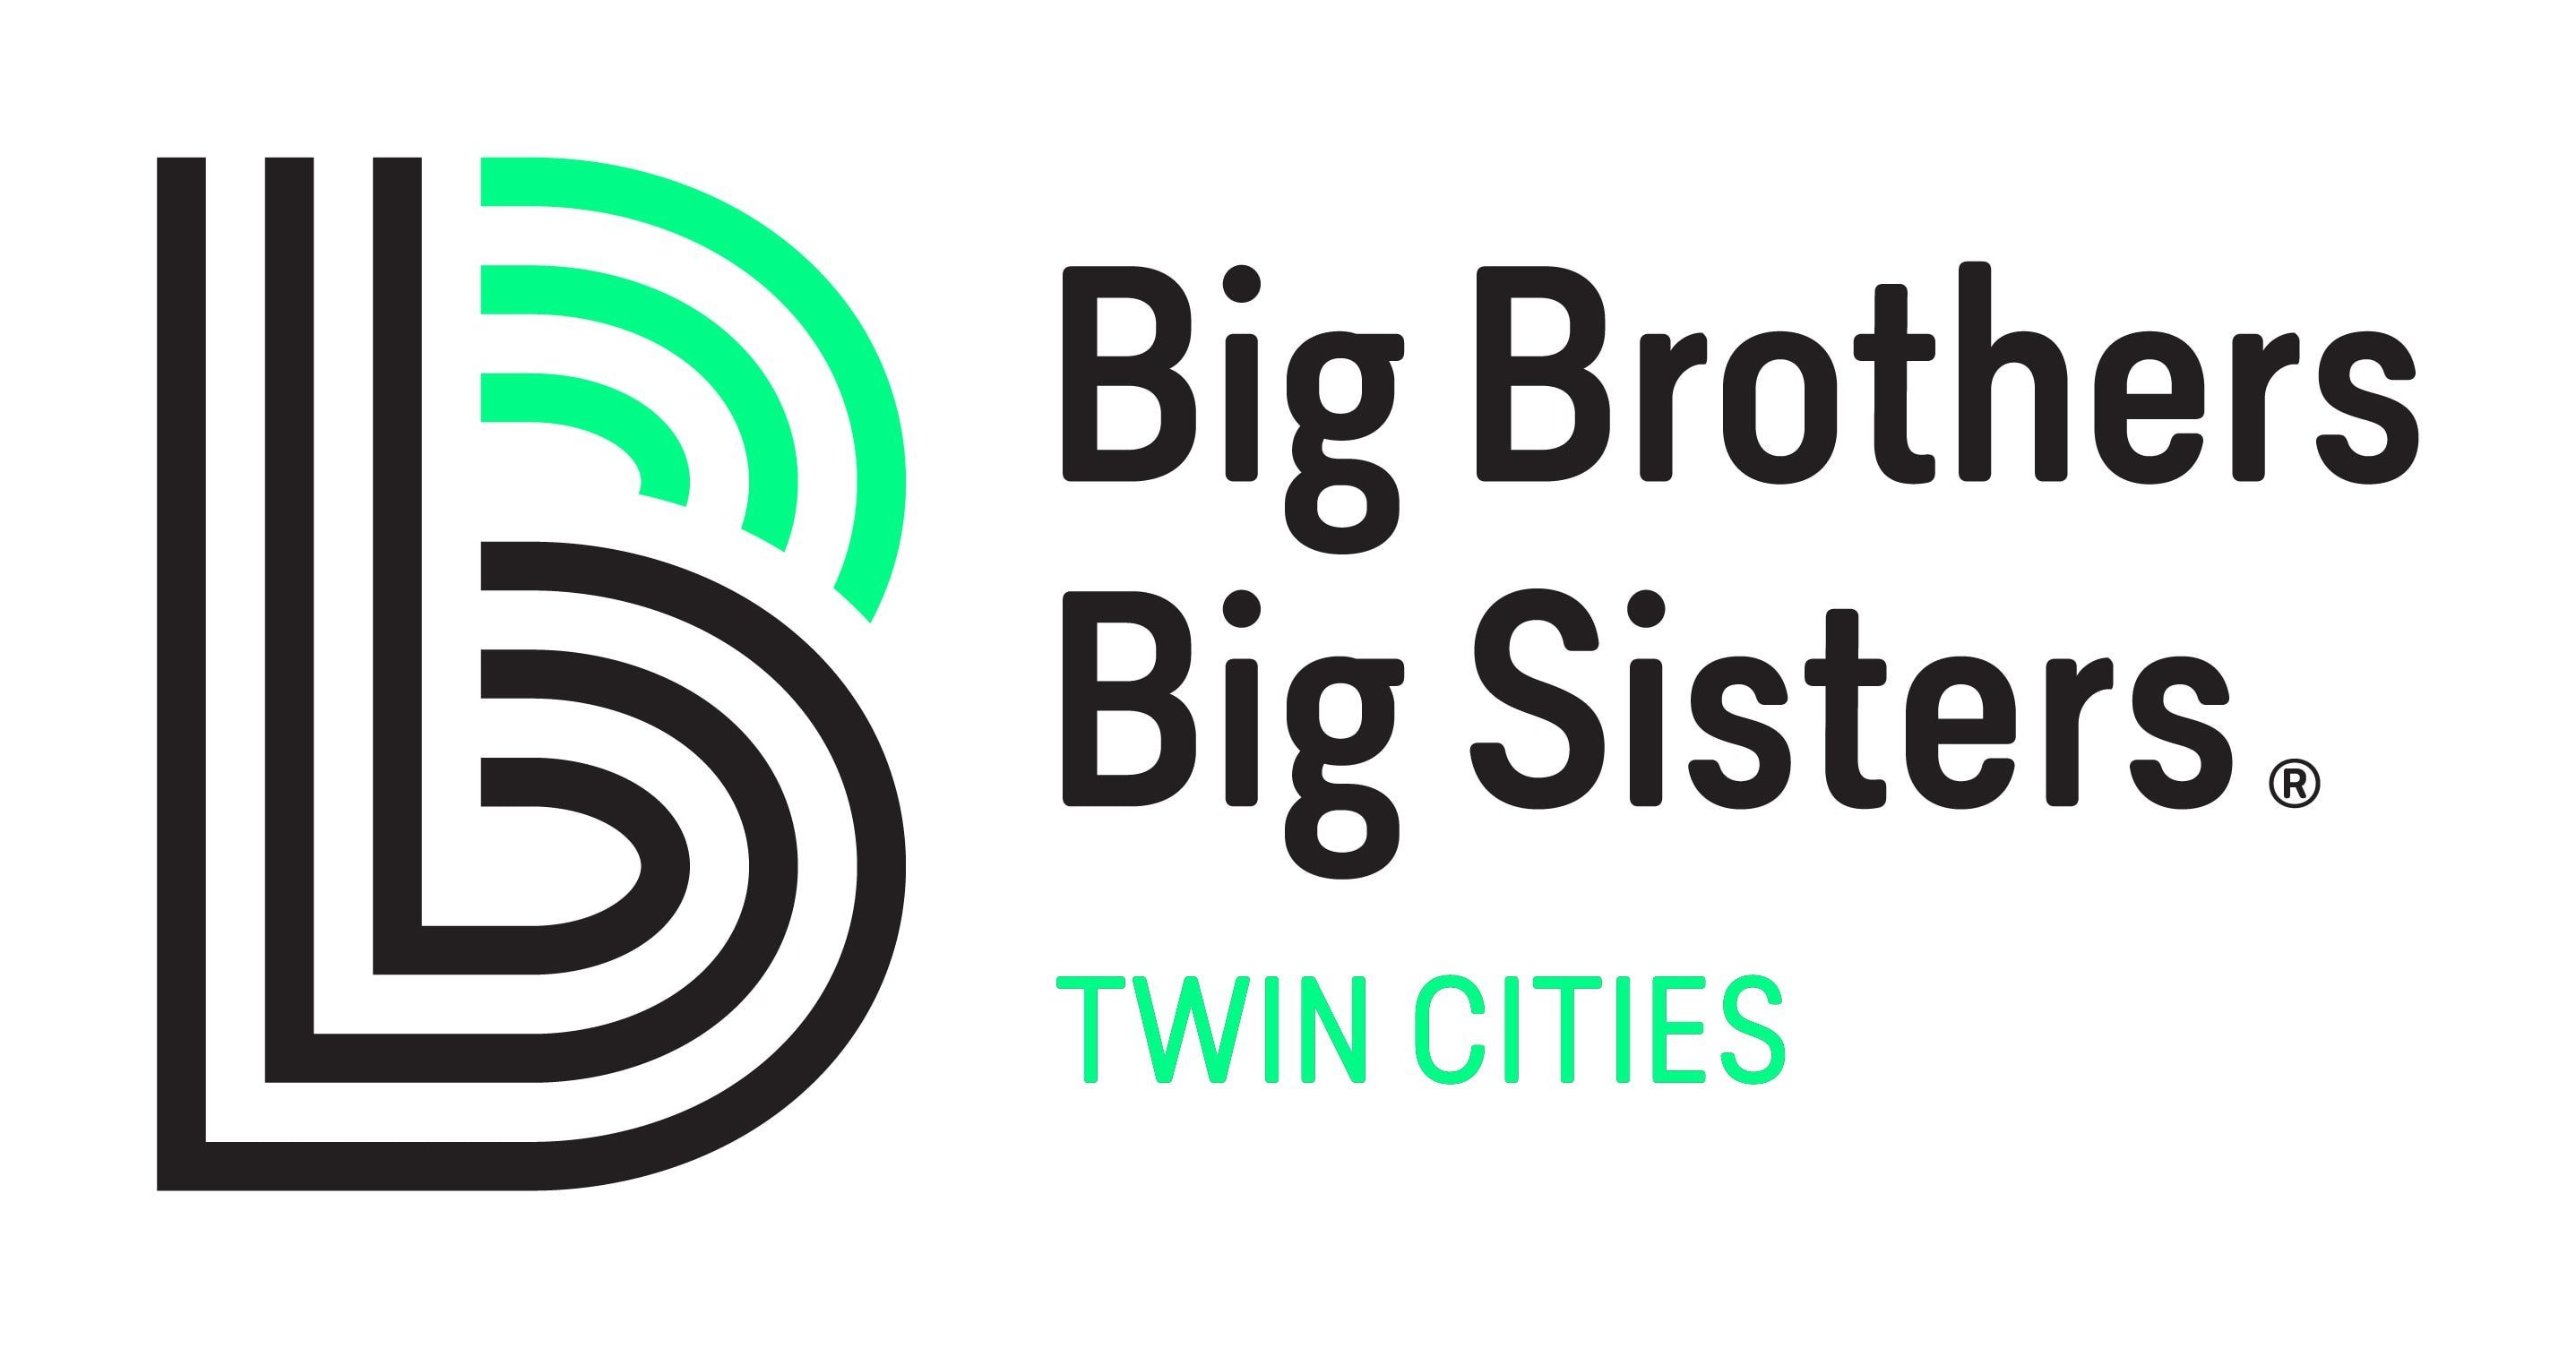 Big Brothers Big Sisters Twin Cities